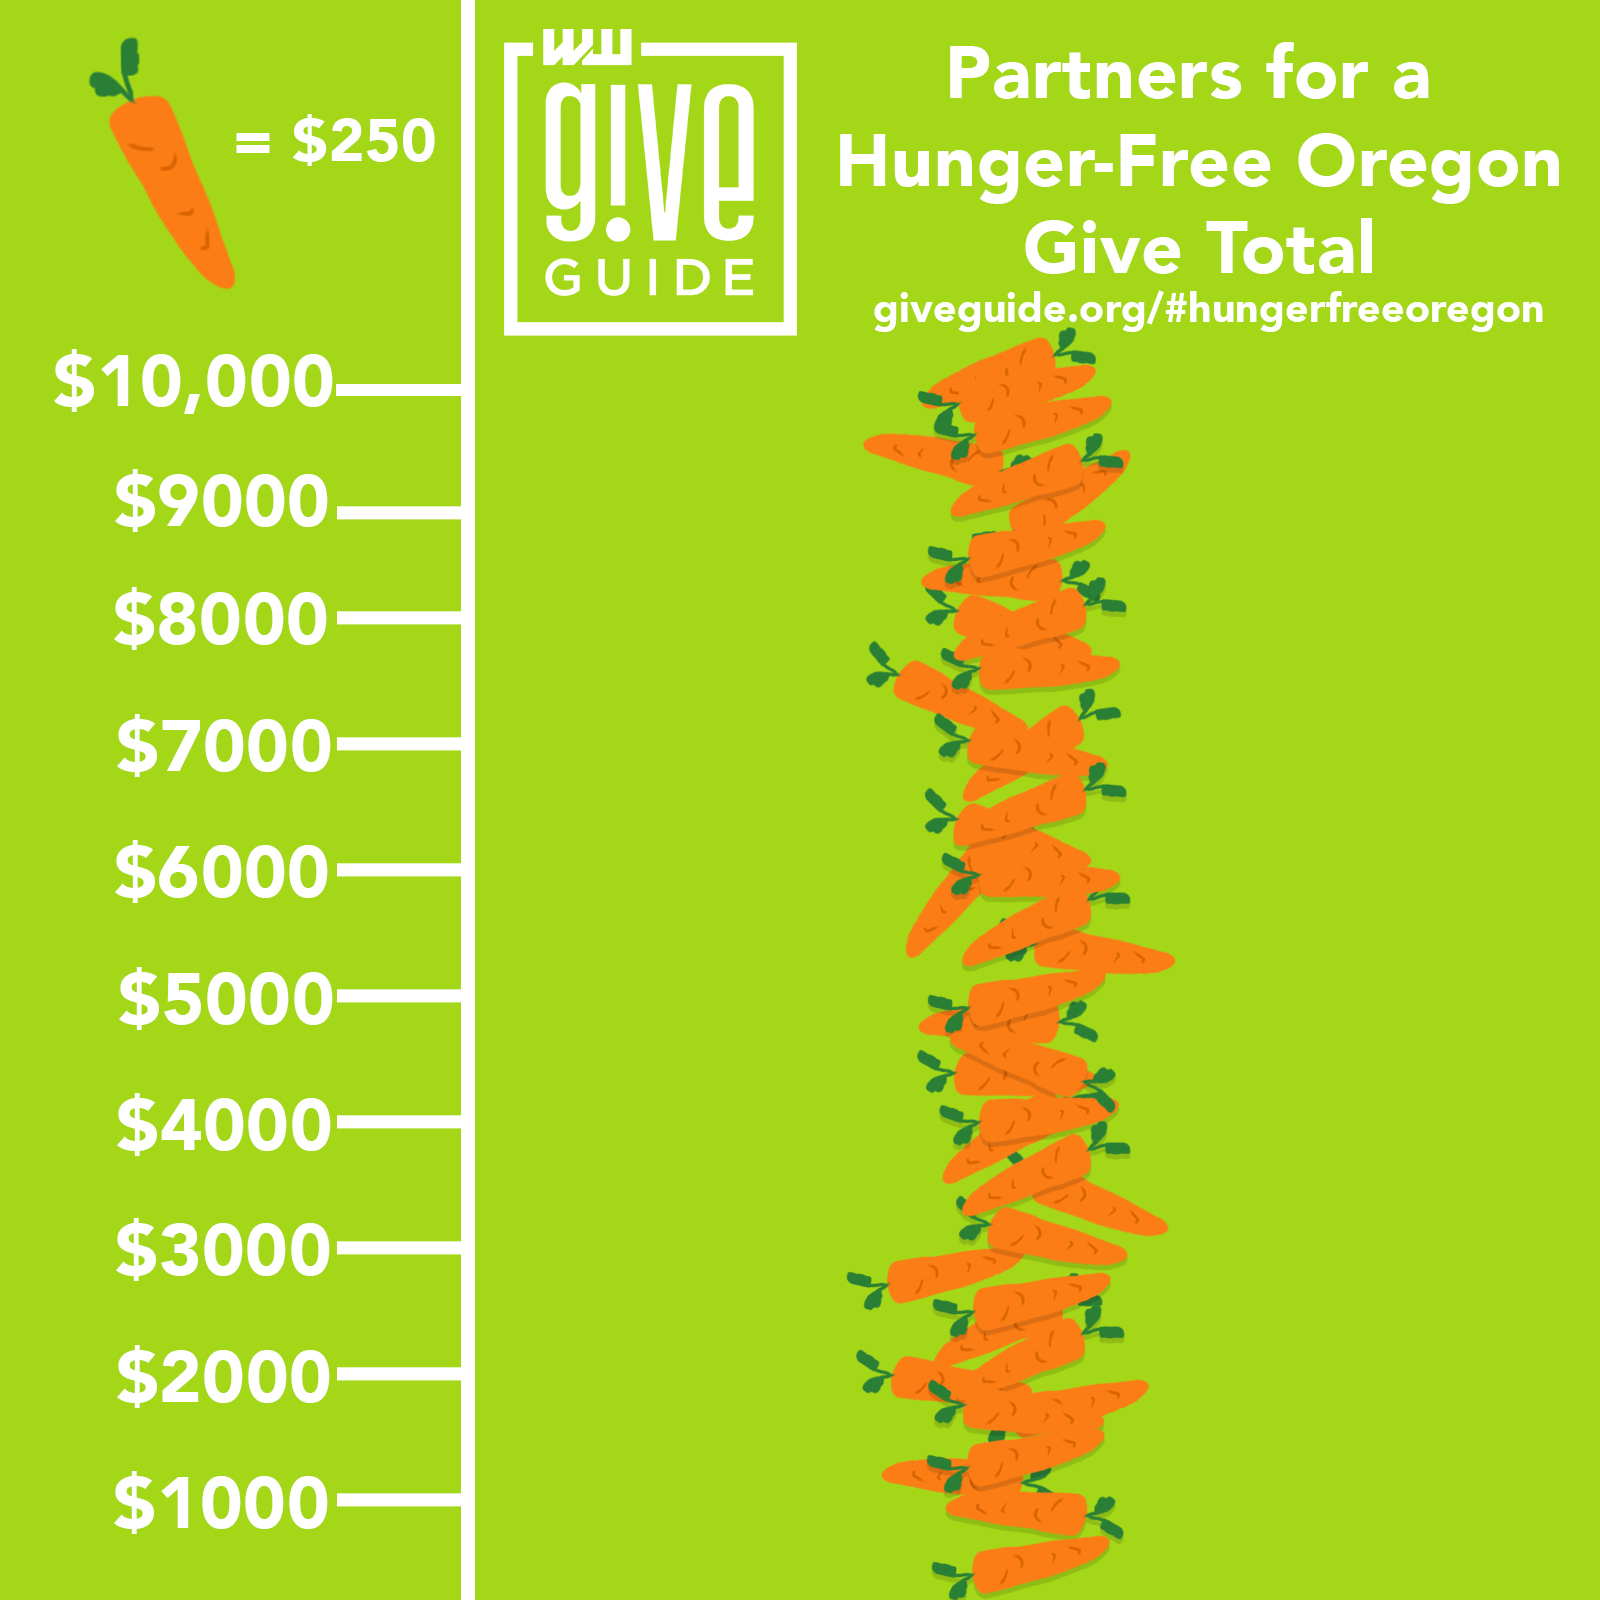 Give!Guide - The Give!Guide campaign ended December 31, 2018 and raised more than $10,000!